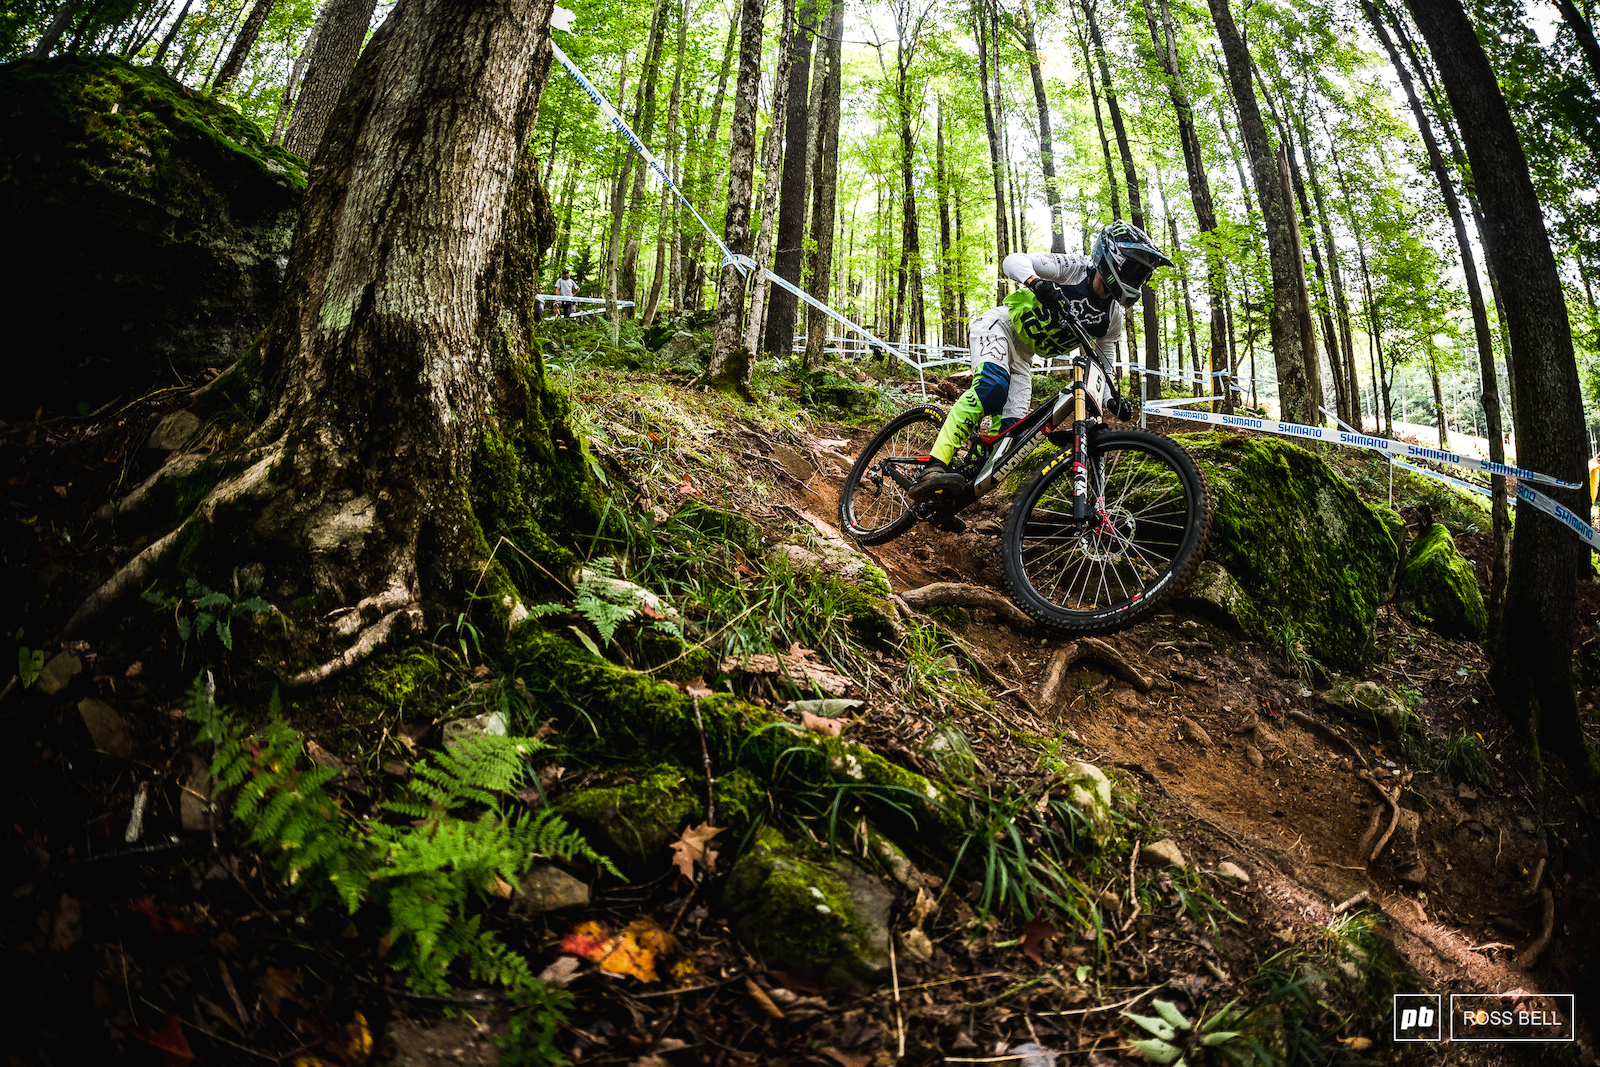 Loris Vergier has had an up and down season but will be looking to end on a high in Snowshoe.